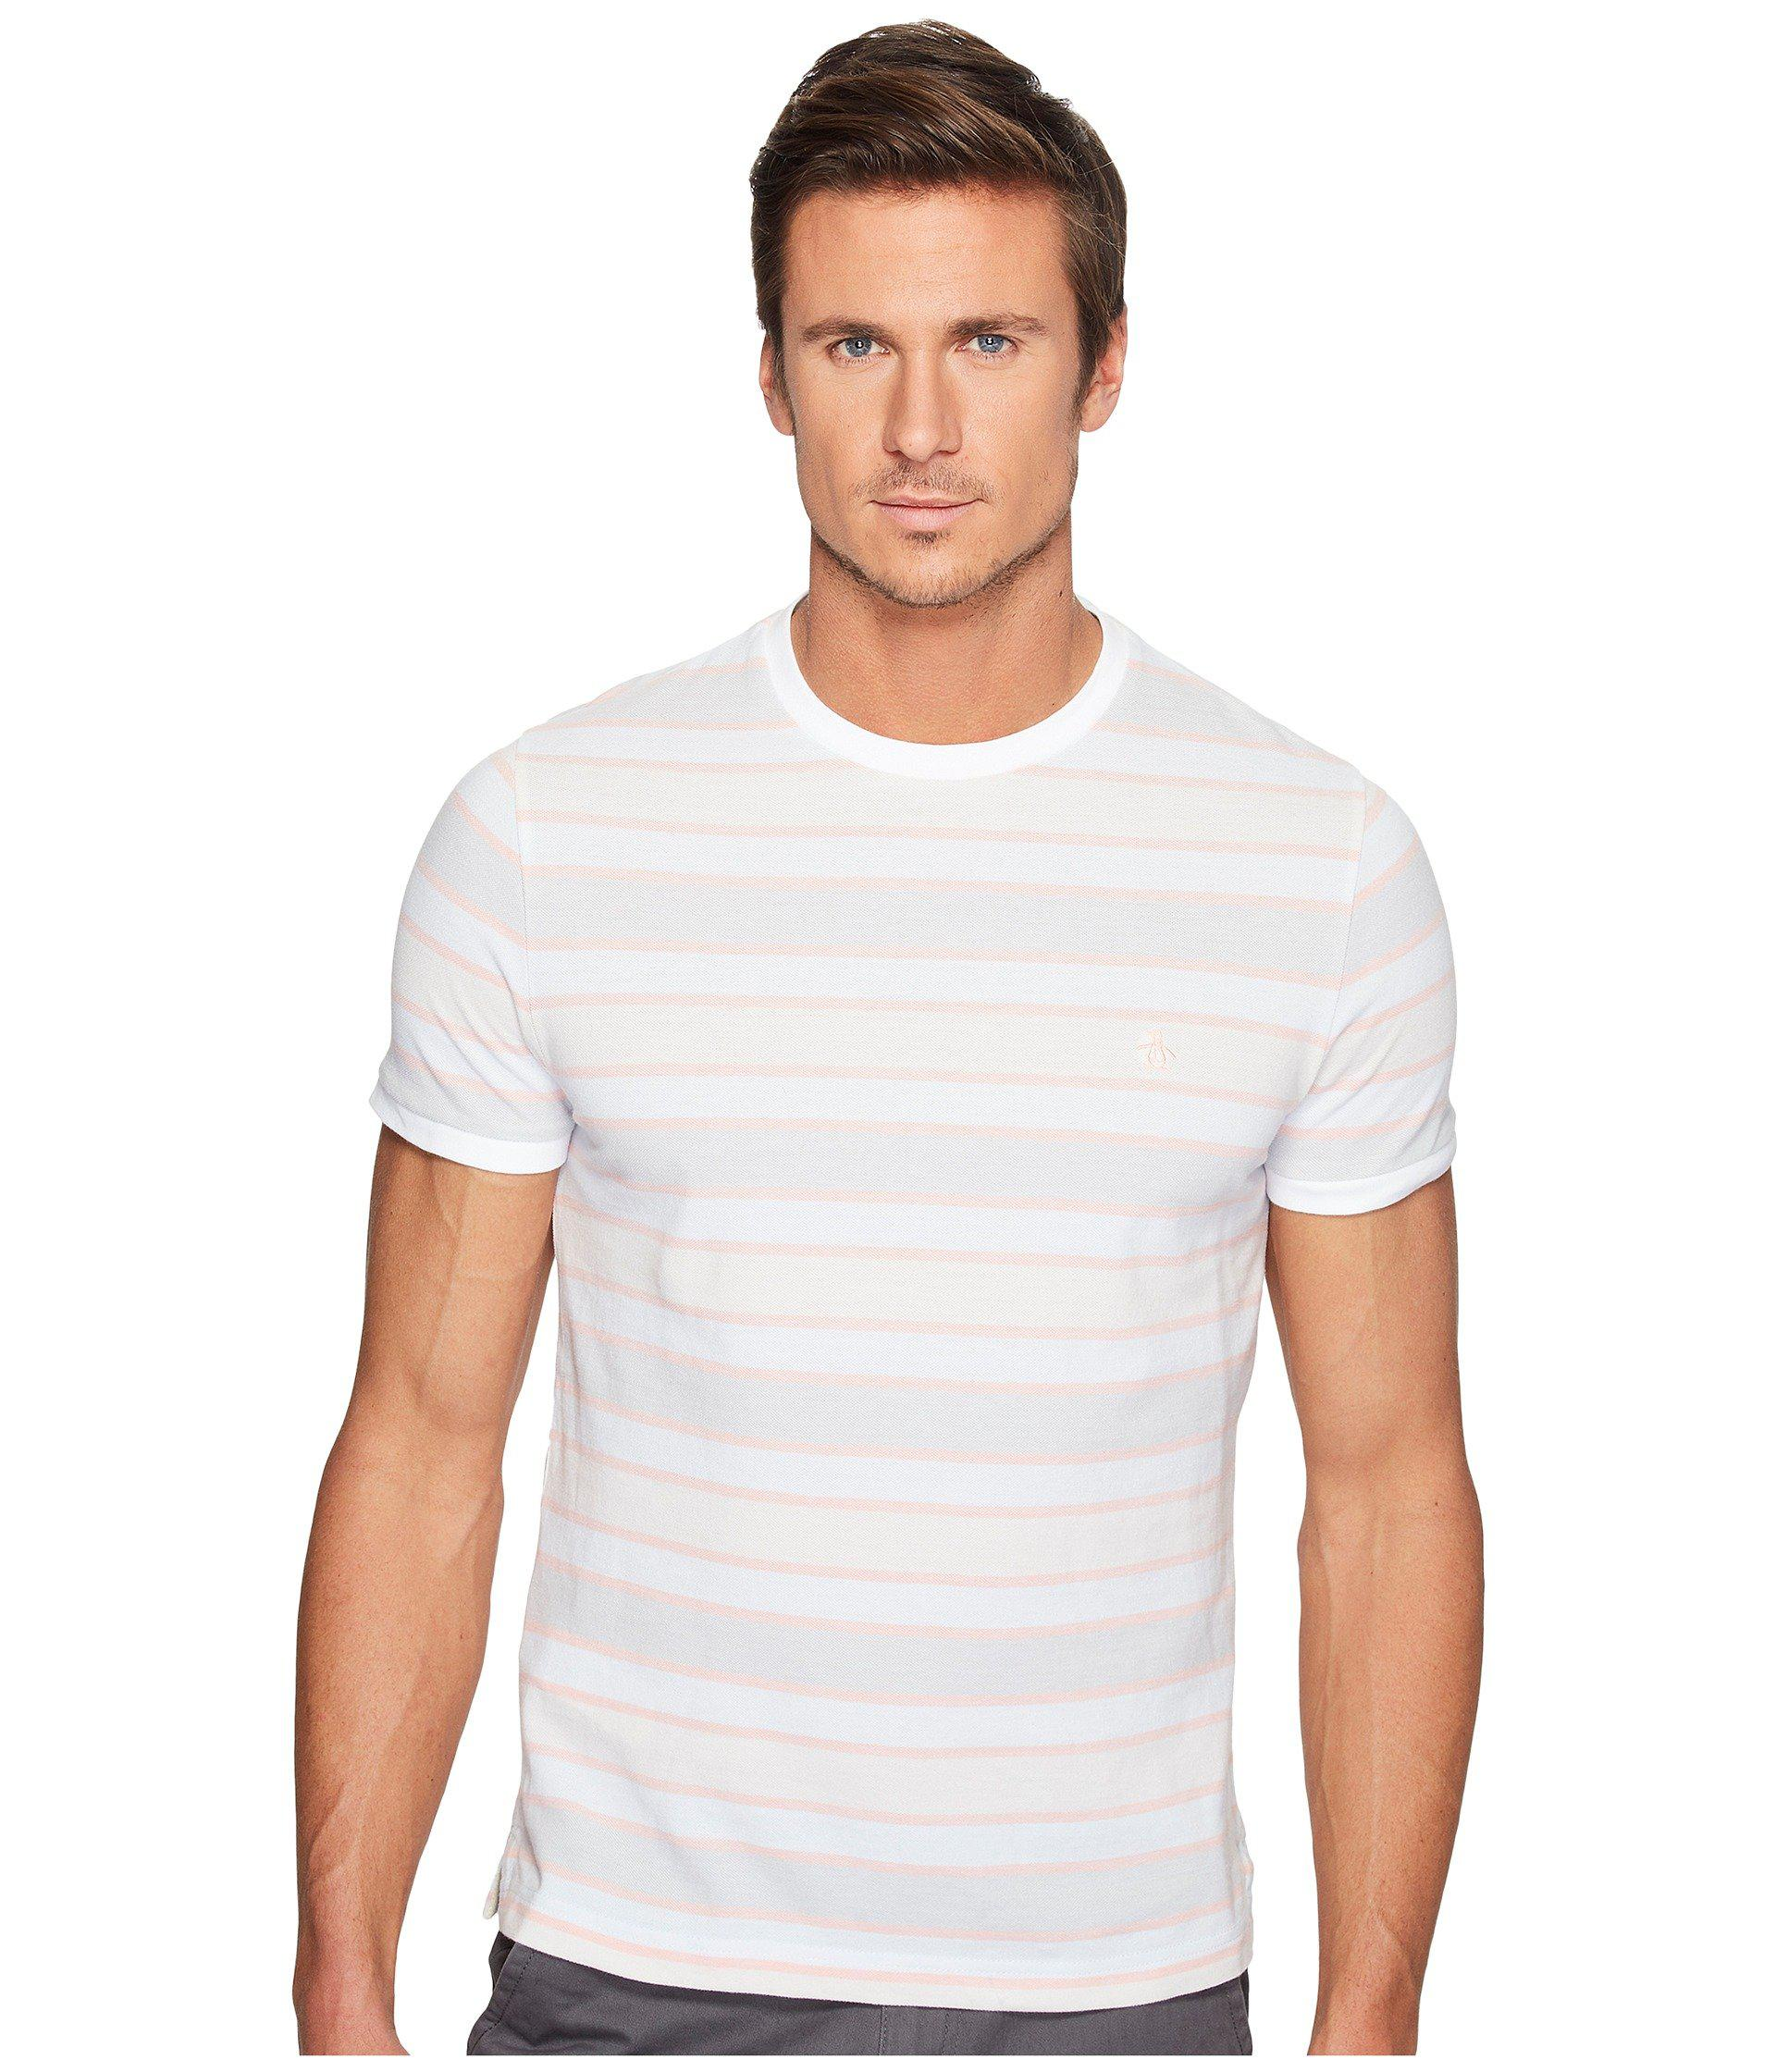 Sale Inexpensive Buy Cheap Really Mens Birdseye Short Sleeve T - Shirt Original Penguin Free Shipping Pay With Visa Reliable Cheap Online Cheap Prices Reliable 6TkTYh8YoM